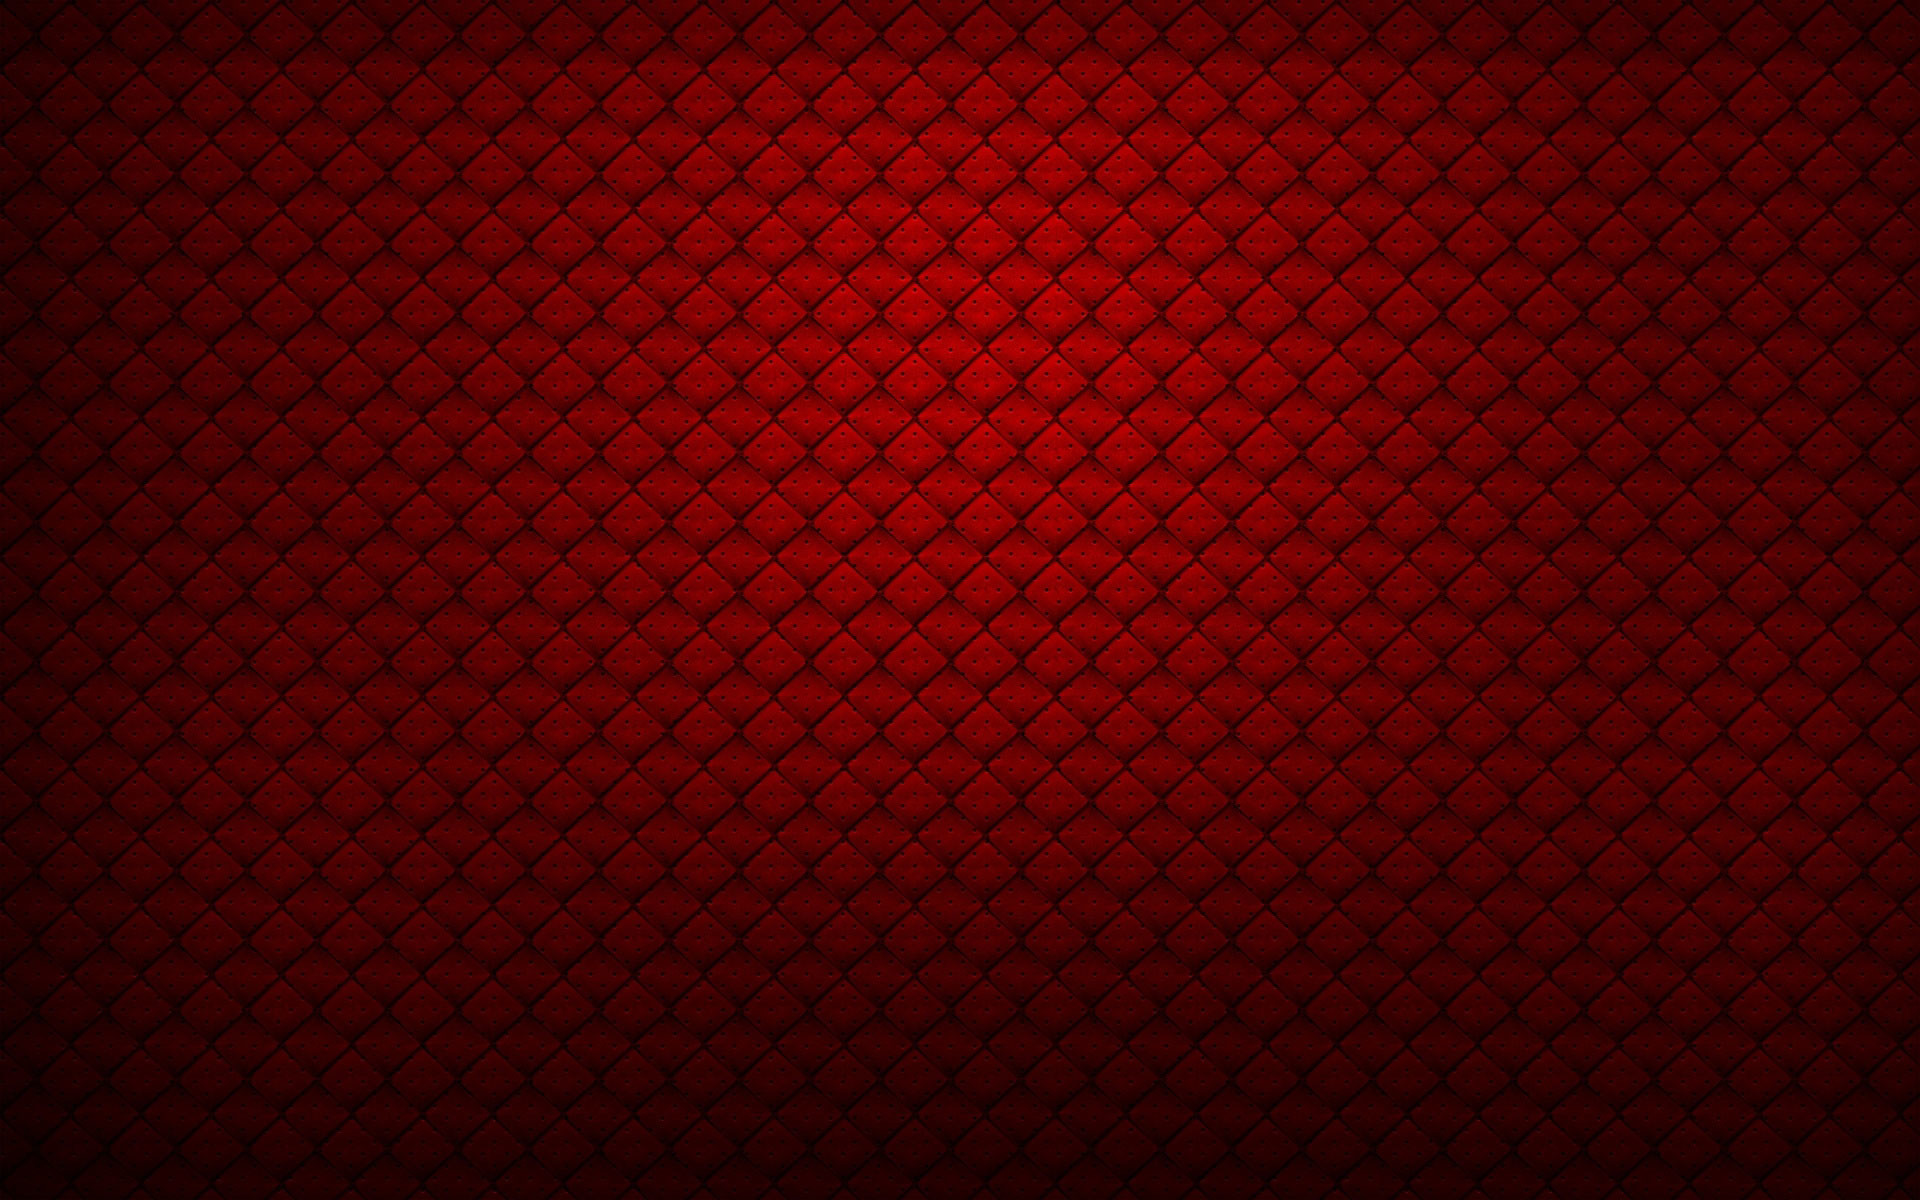 1920x1200 Red Wallpaper 27